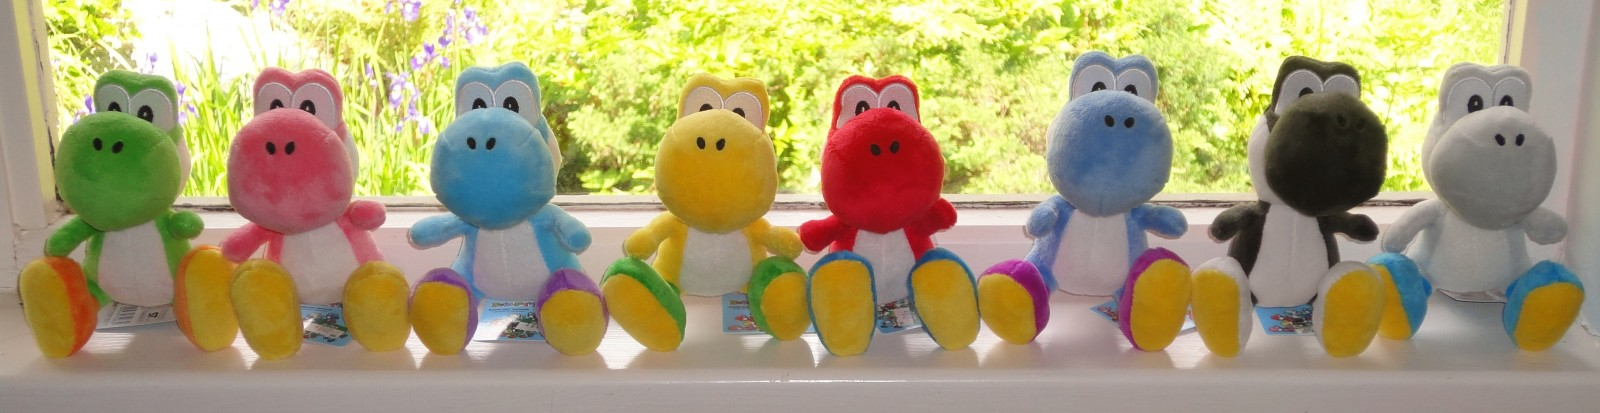 Row of Yoshi plushies on a windowsill